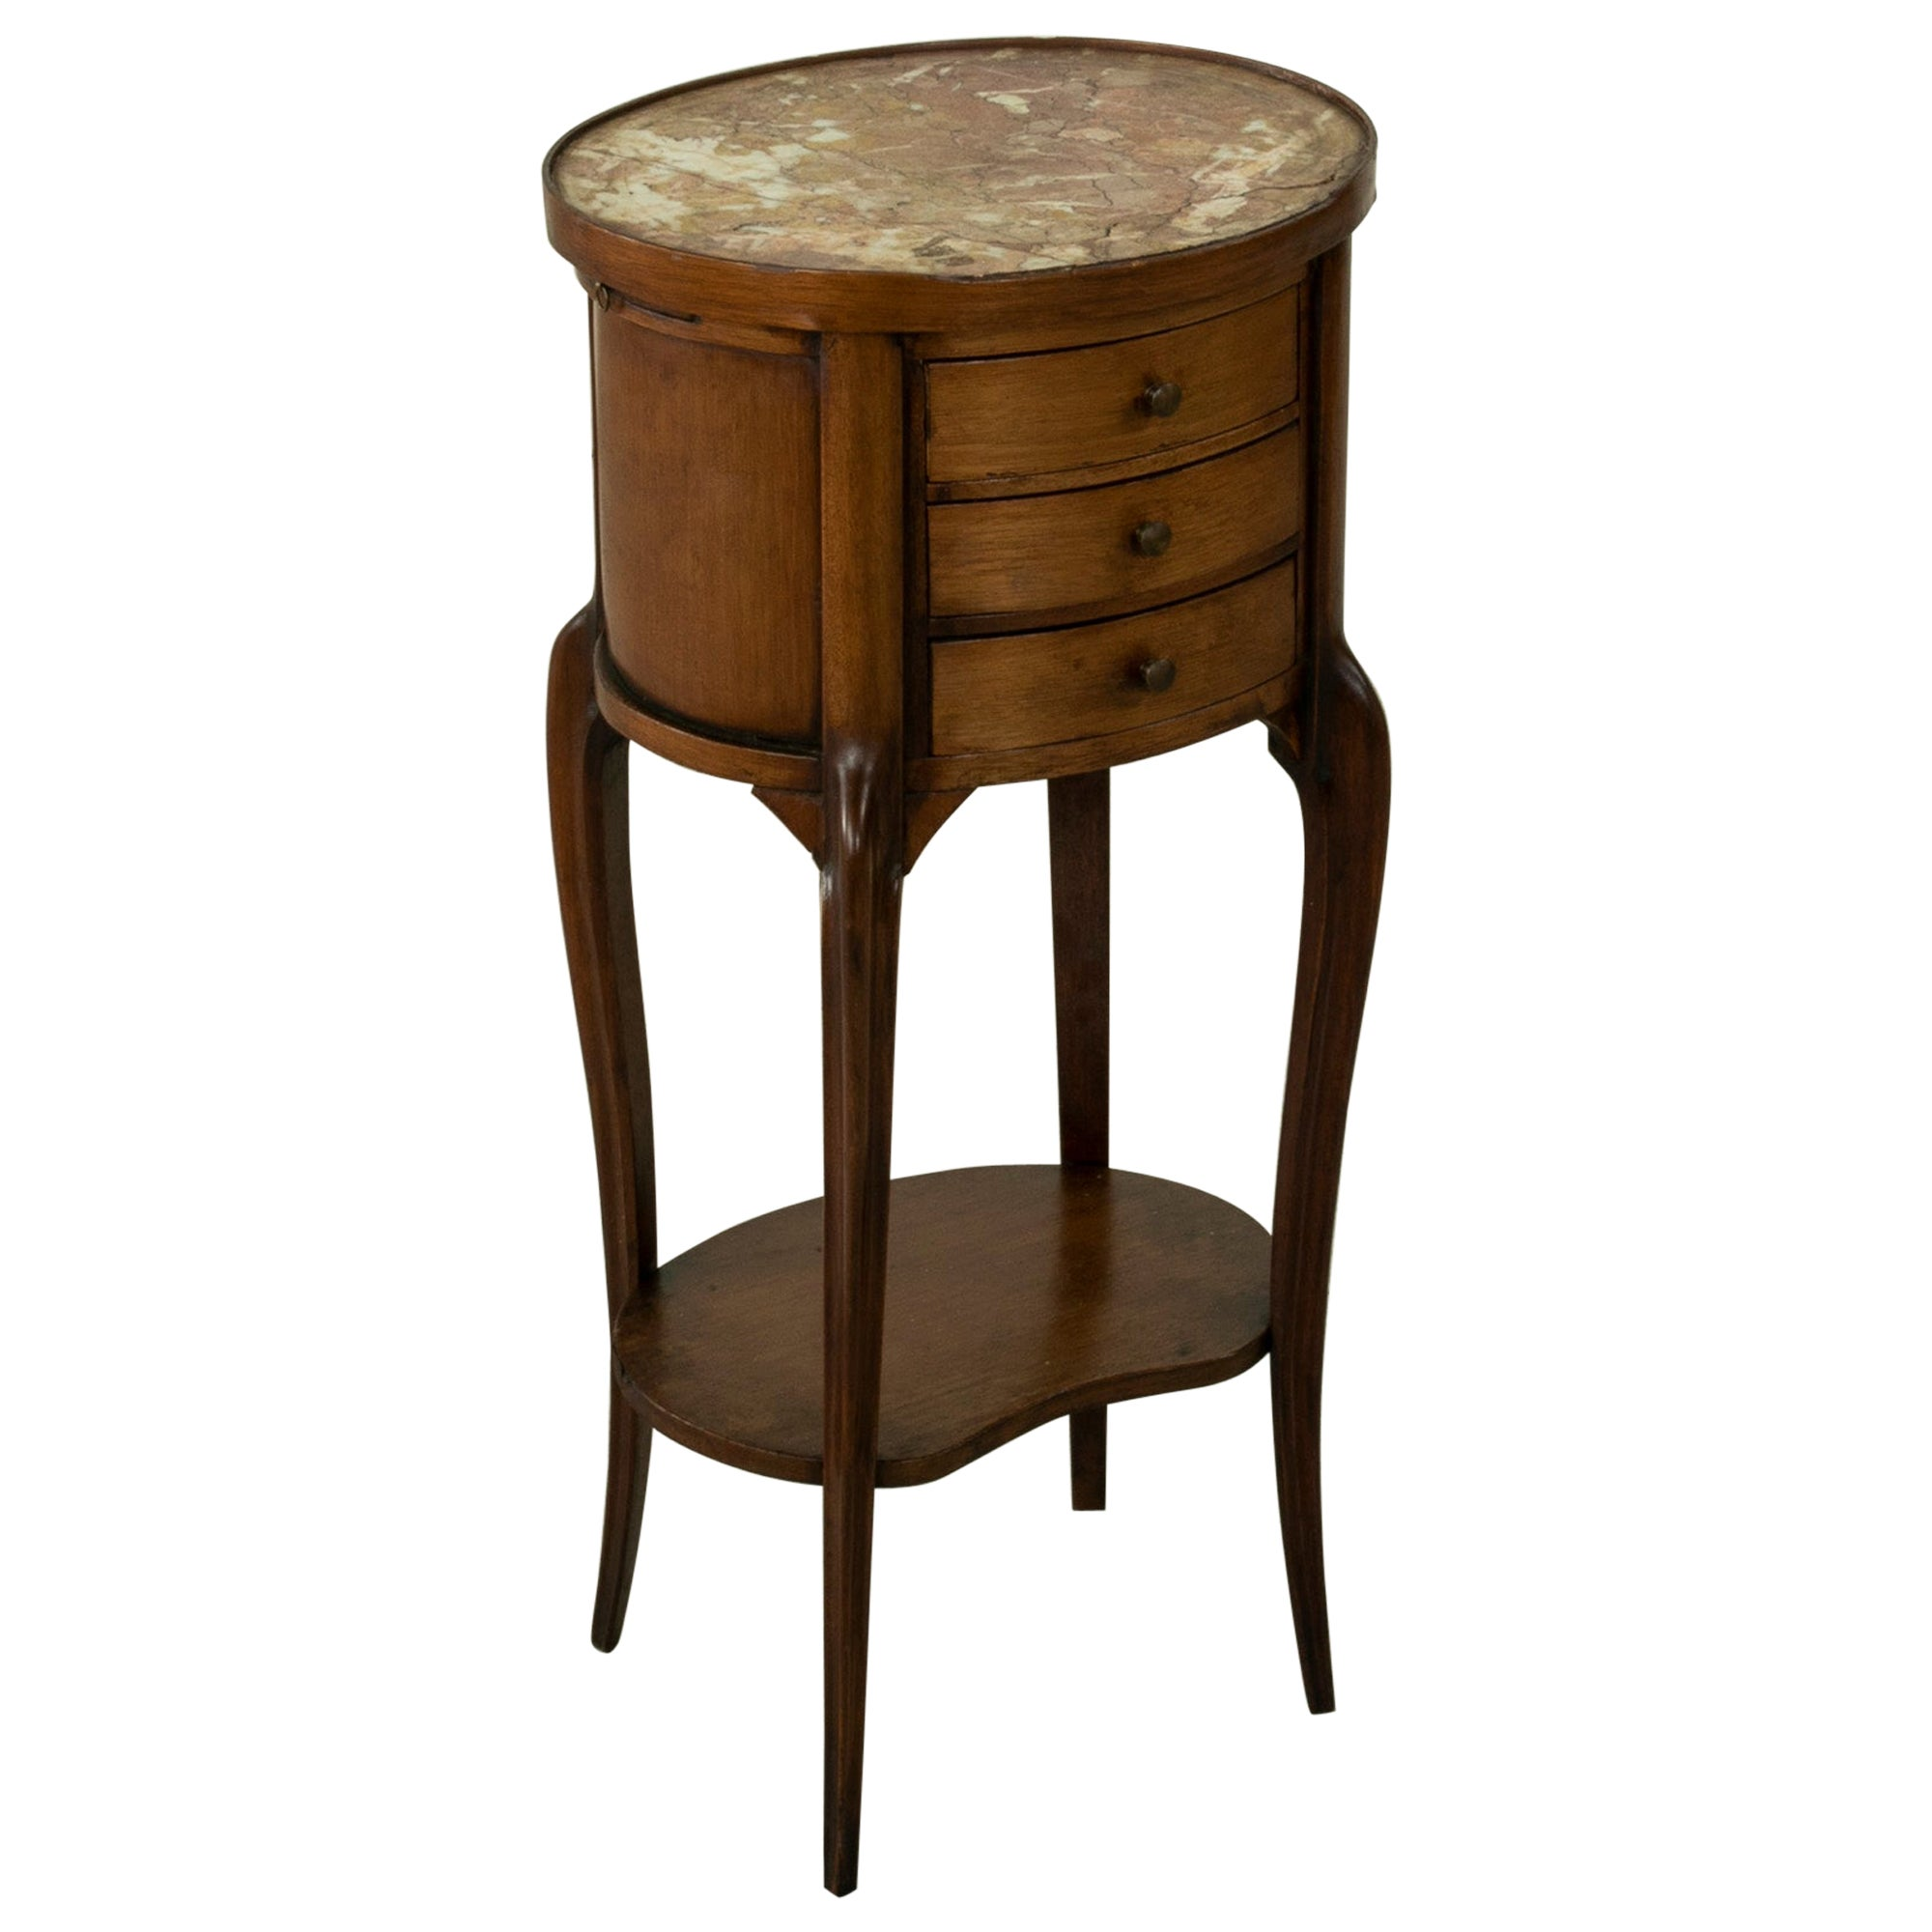 Late 19th Century French Louis XV Style Walnut Side Table with Marble Top